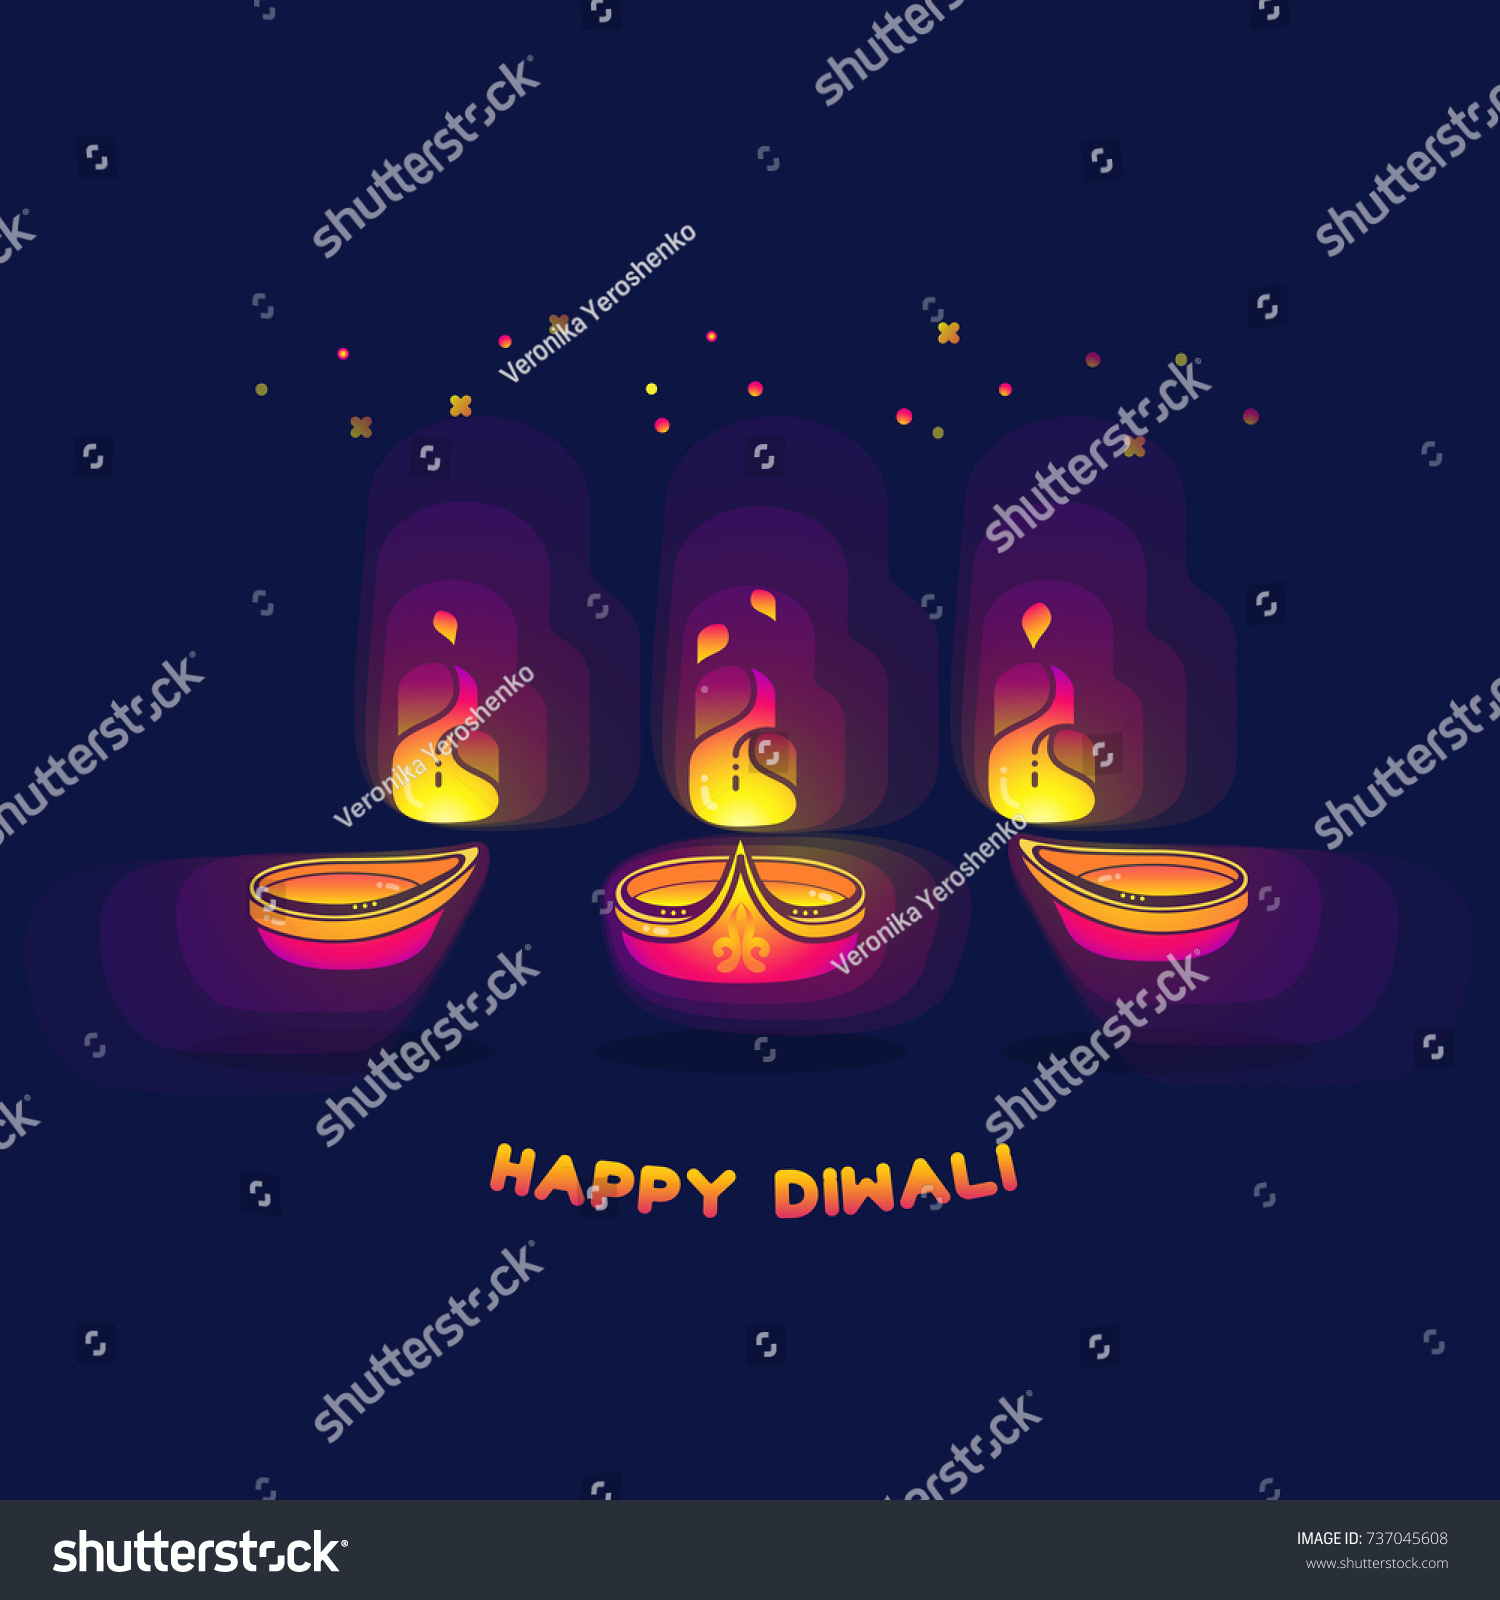 Happy diwali greeting card festival lights stock vector 737045608 happy diwali greeting card the festival of lights vector illustration diwali lamps bright kristyandbryce Gallery